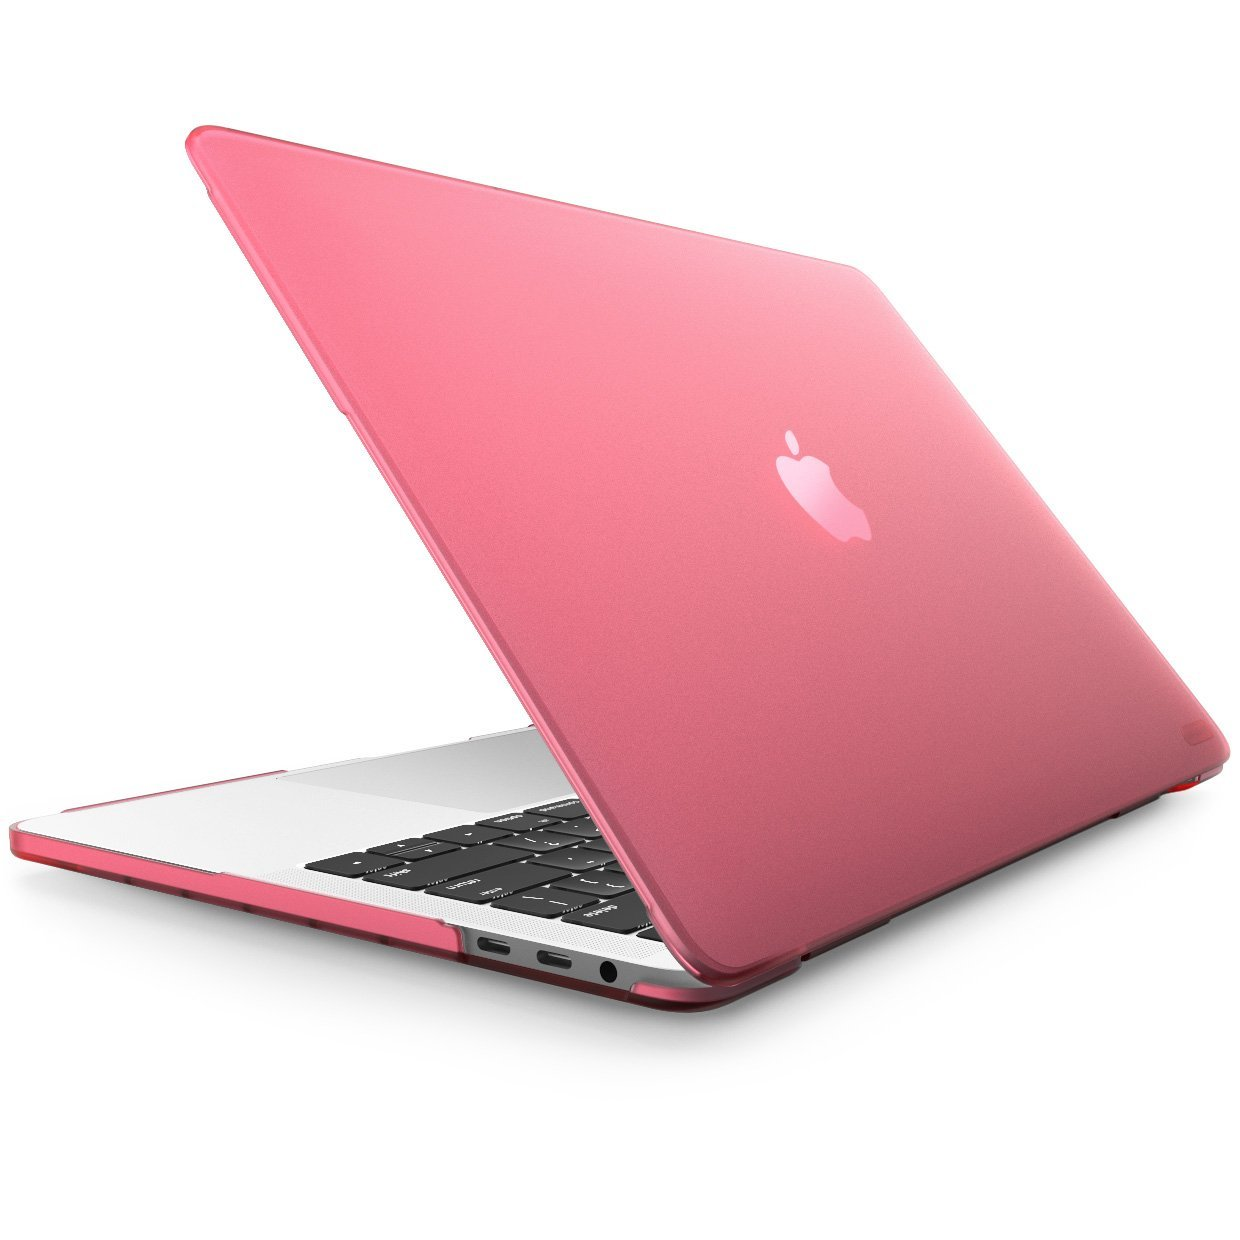 cheaper ac161 82b9a MacBook Pro 13 Case 2016, i-Blason,Halo Macbook with Retina Display Release  fits Touch Bar & Touch ID (Pink)